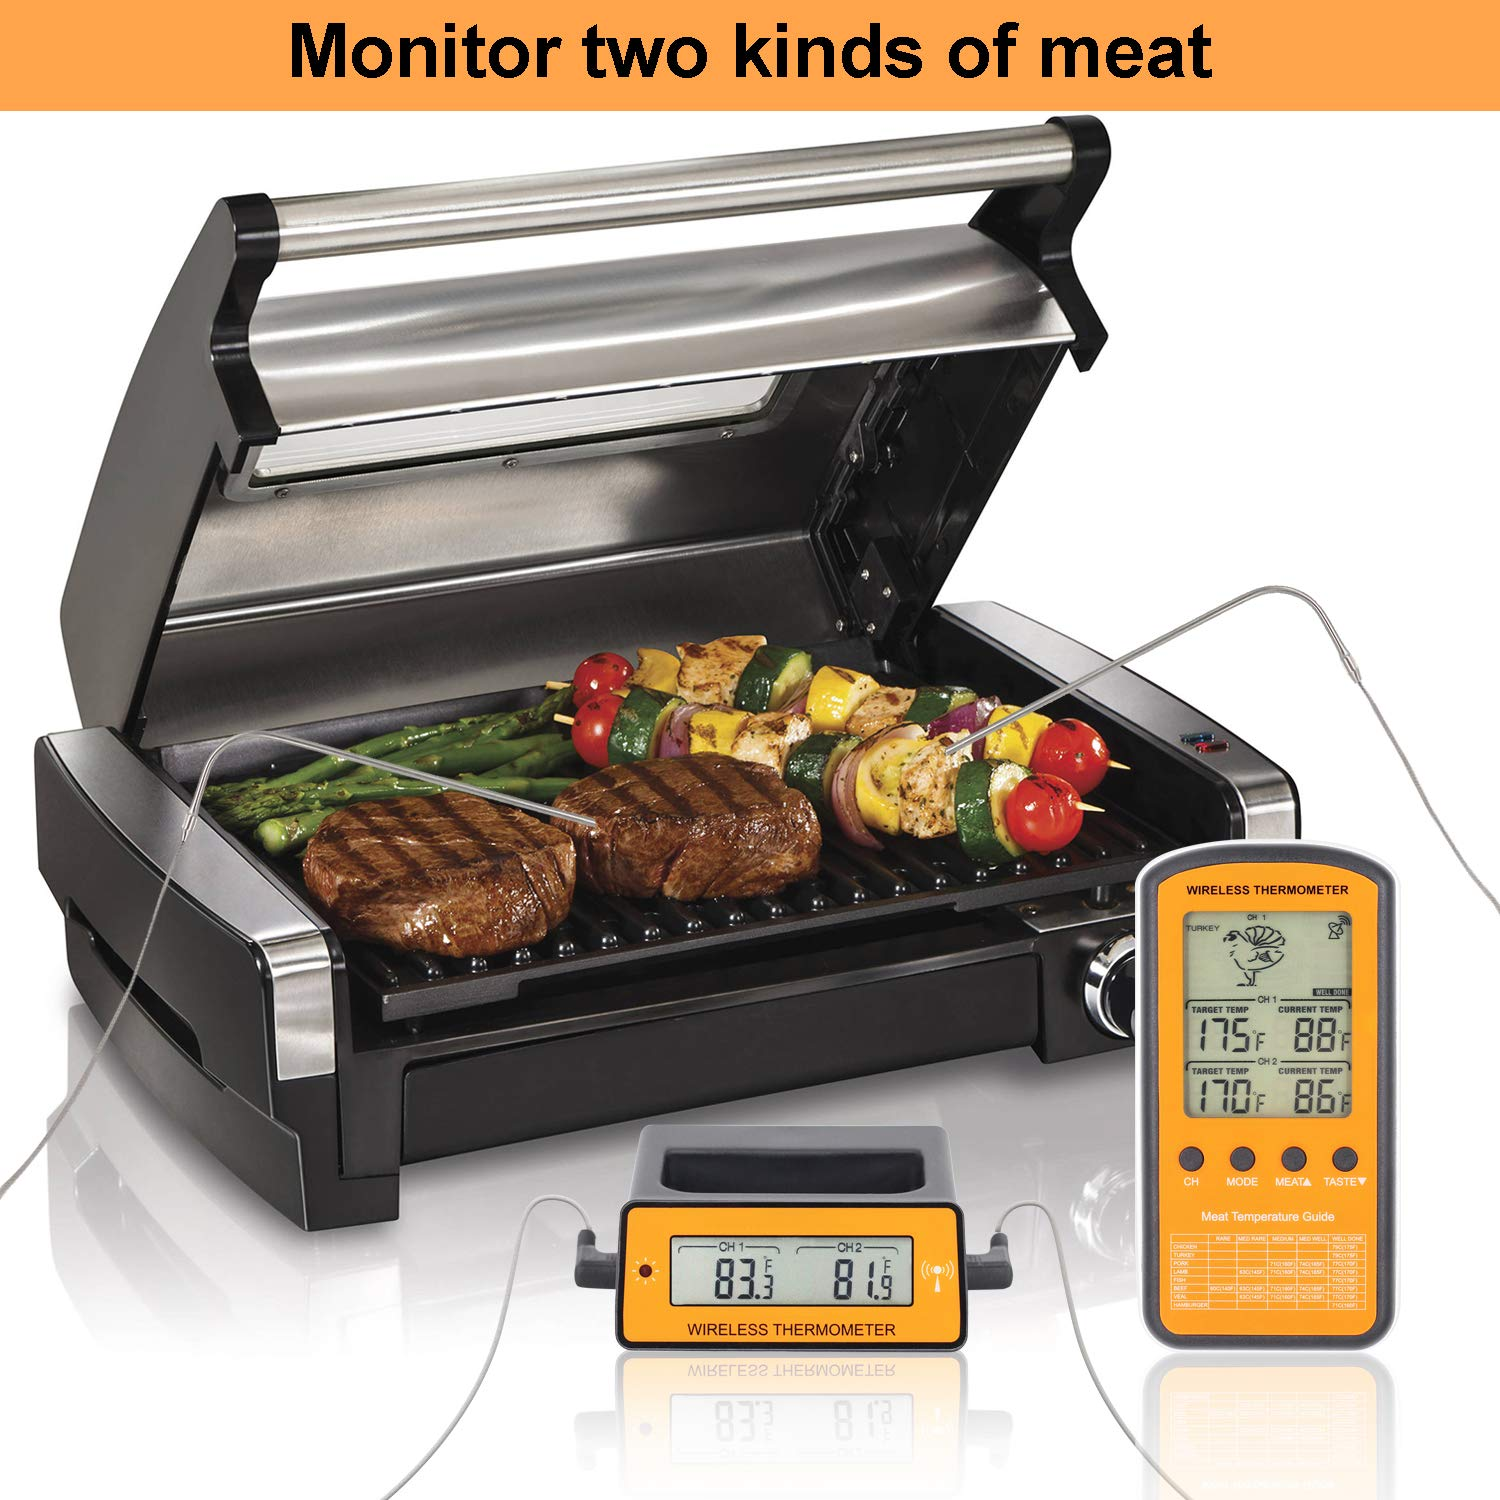 Toroast Wireless Remote Digital Cooking Meat Thermometer Dual Probe for Grilling Smoker BBQ Food Thermometer